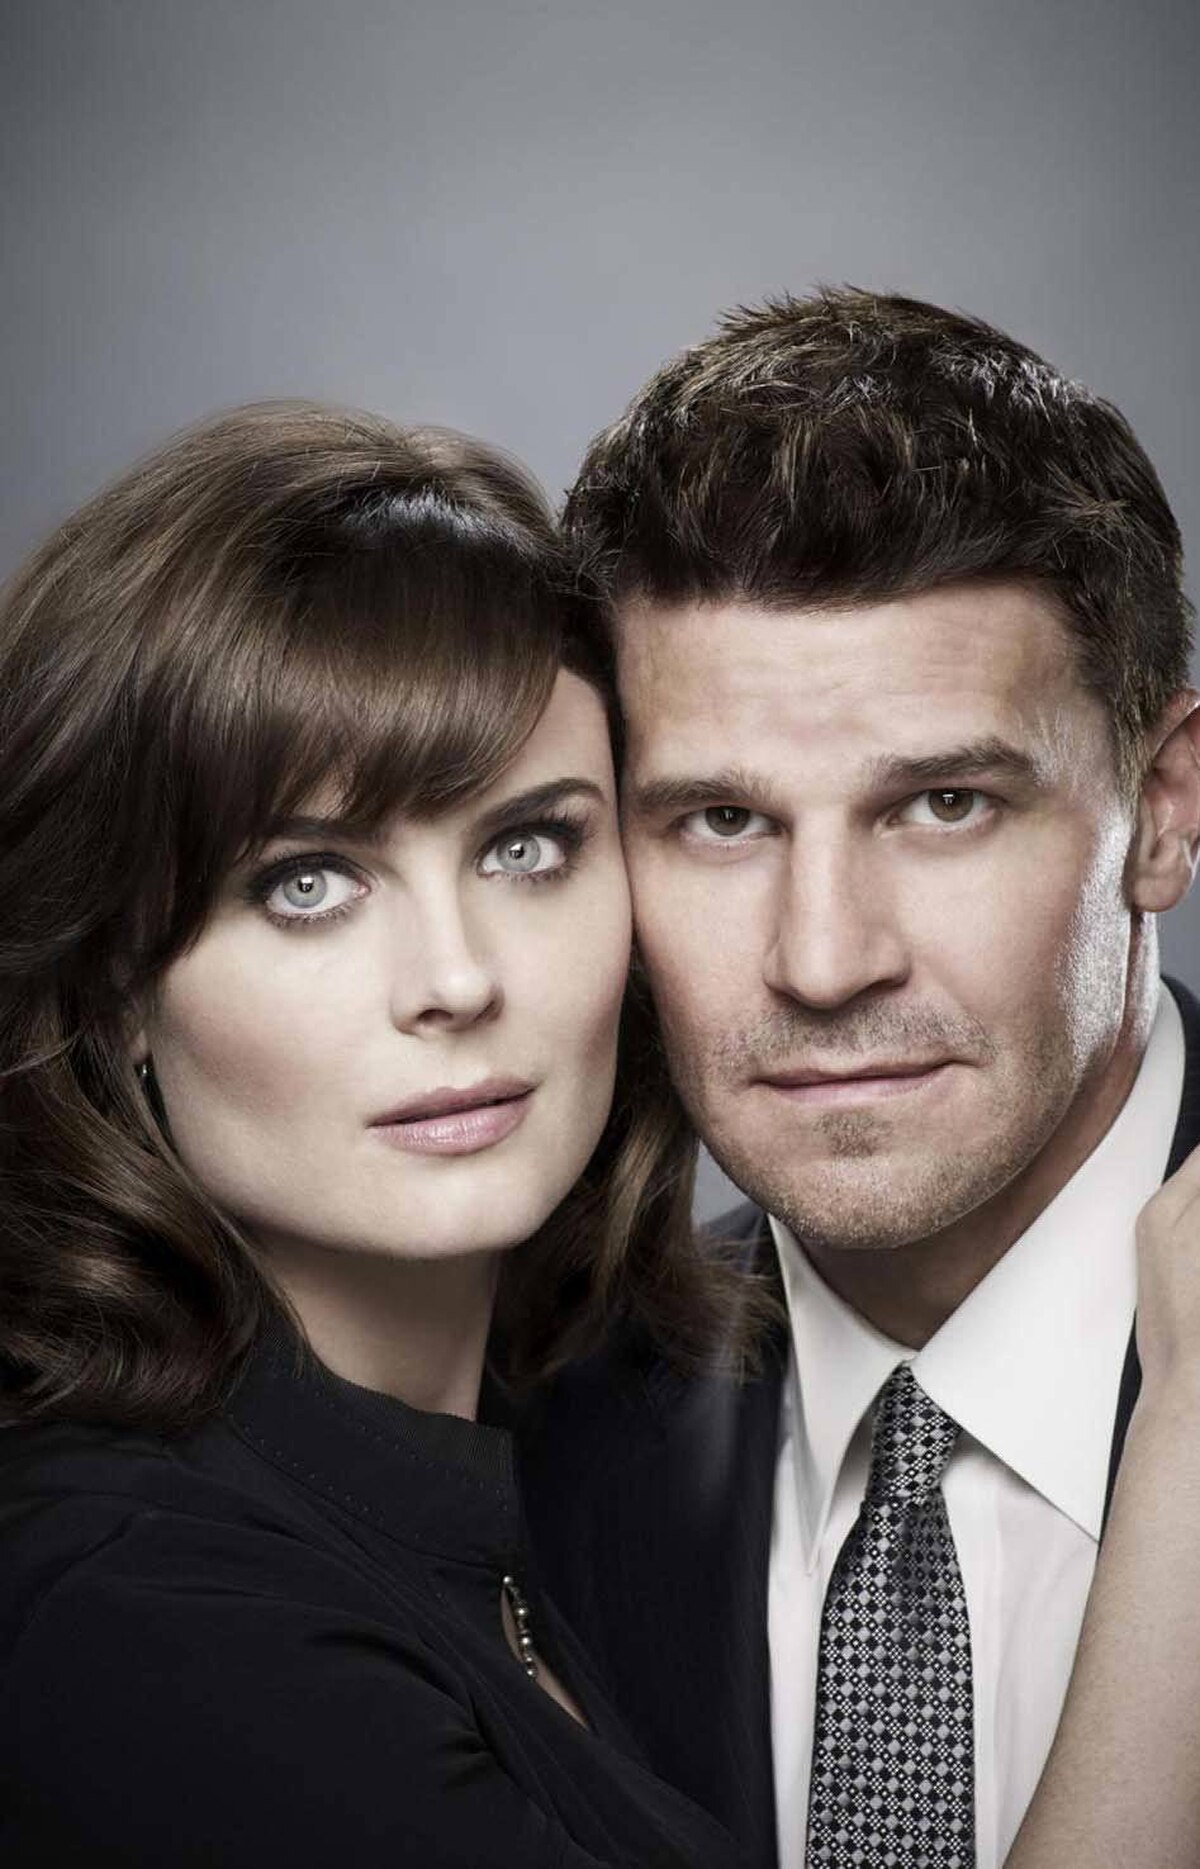 DRAMA Bones Fox, Global, 8 p.m. ET/PT Relocated to a new night, this low-key crime procedural is back with a typically grisly episode after a nearly three-month break due to Emily Deschanel's pregnancy. The remains of an escaped convict are found in a neighbourhood sewer, but a forensic examination reveals that the victim died while still incarcerated. FBI guy Brennan (David Boreanaz) works the case, but insists his forensic partner Booth (Deschanel) sit out the investigation – since she's on the verge of giving birth to their child and all. The eventual arrival of their bundle of joy happens in the most unexpected manner imaginable.